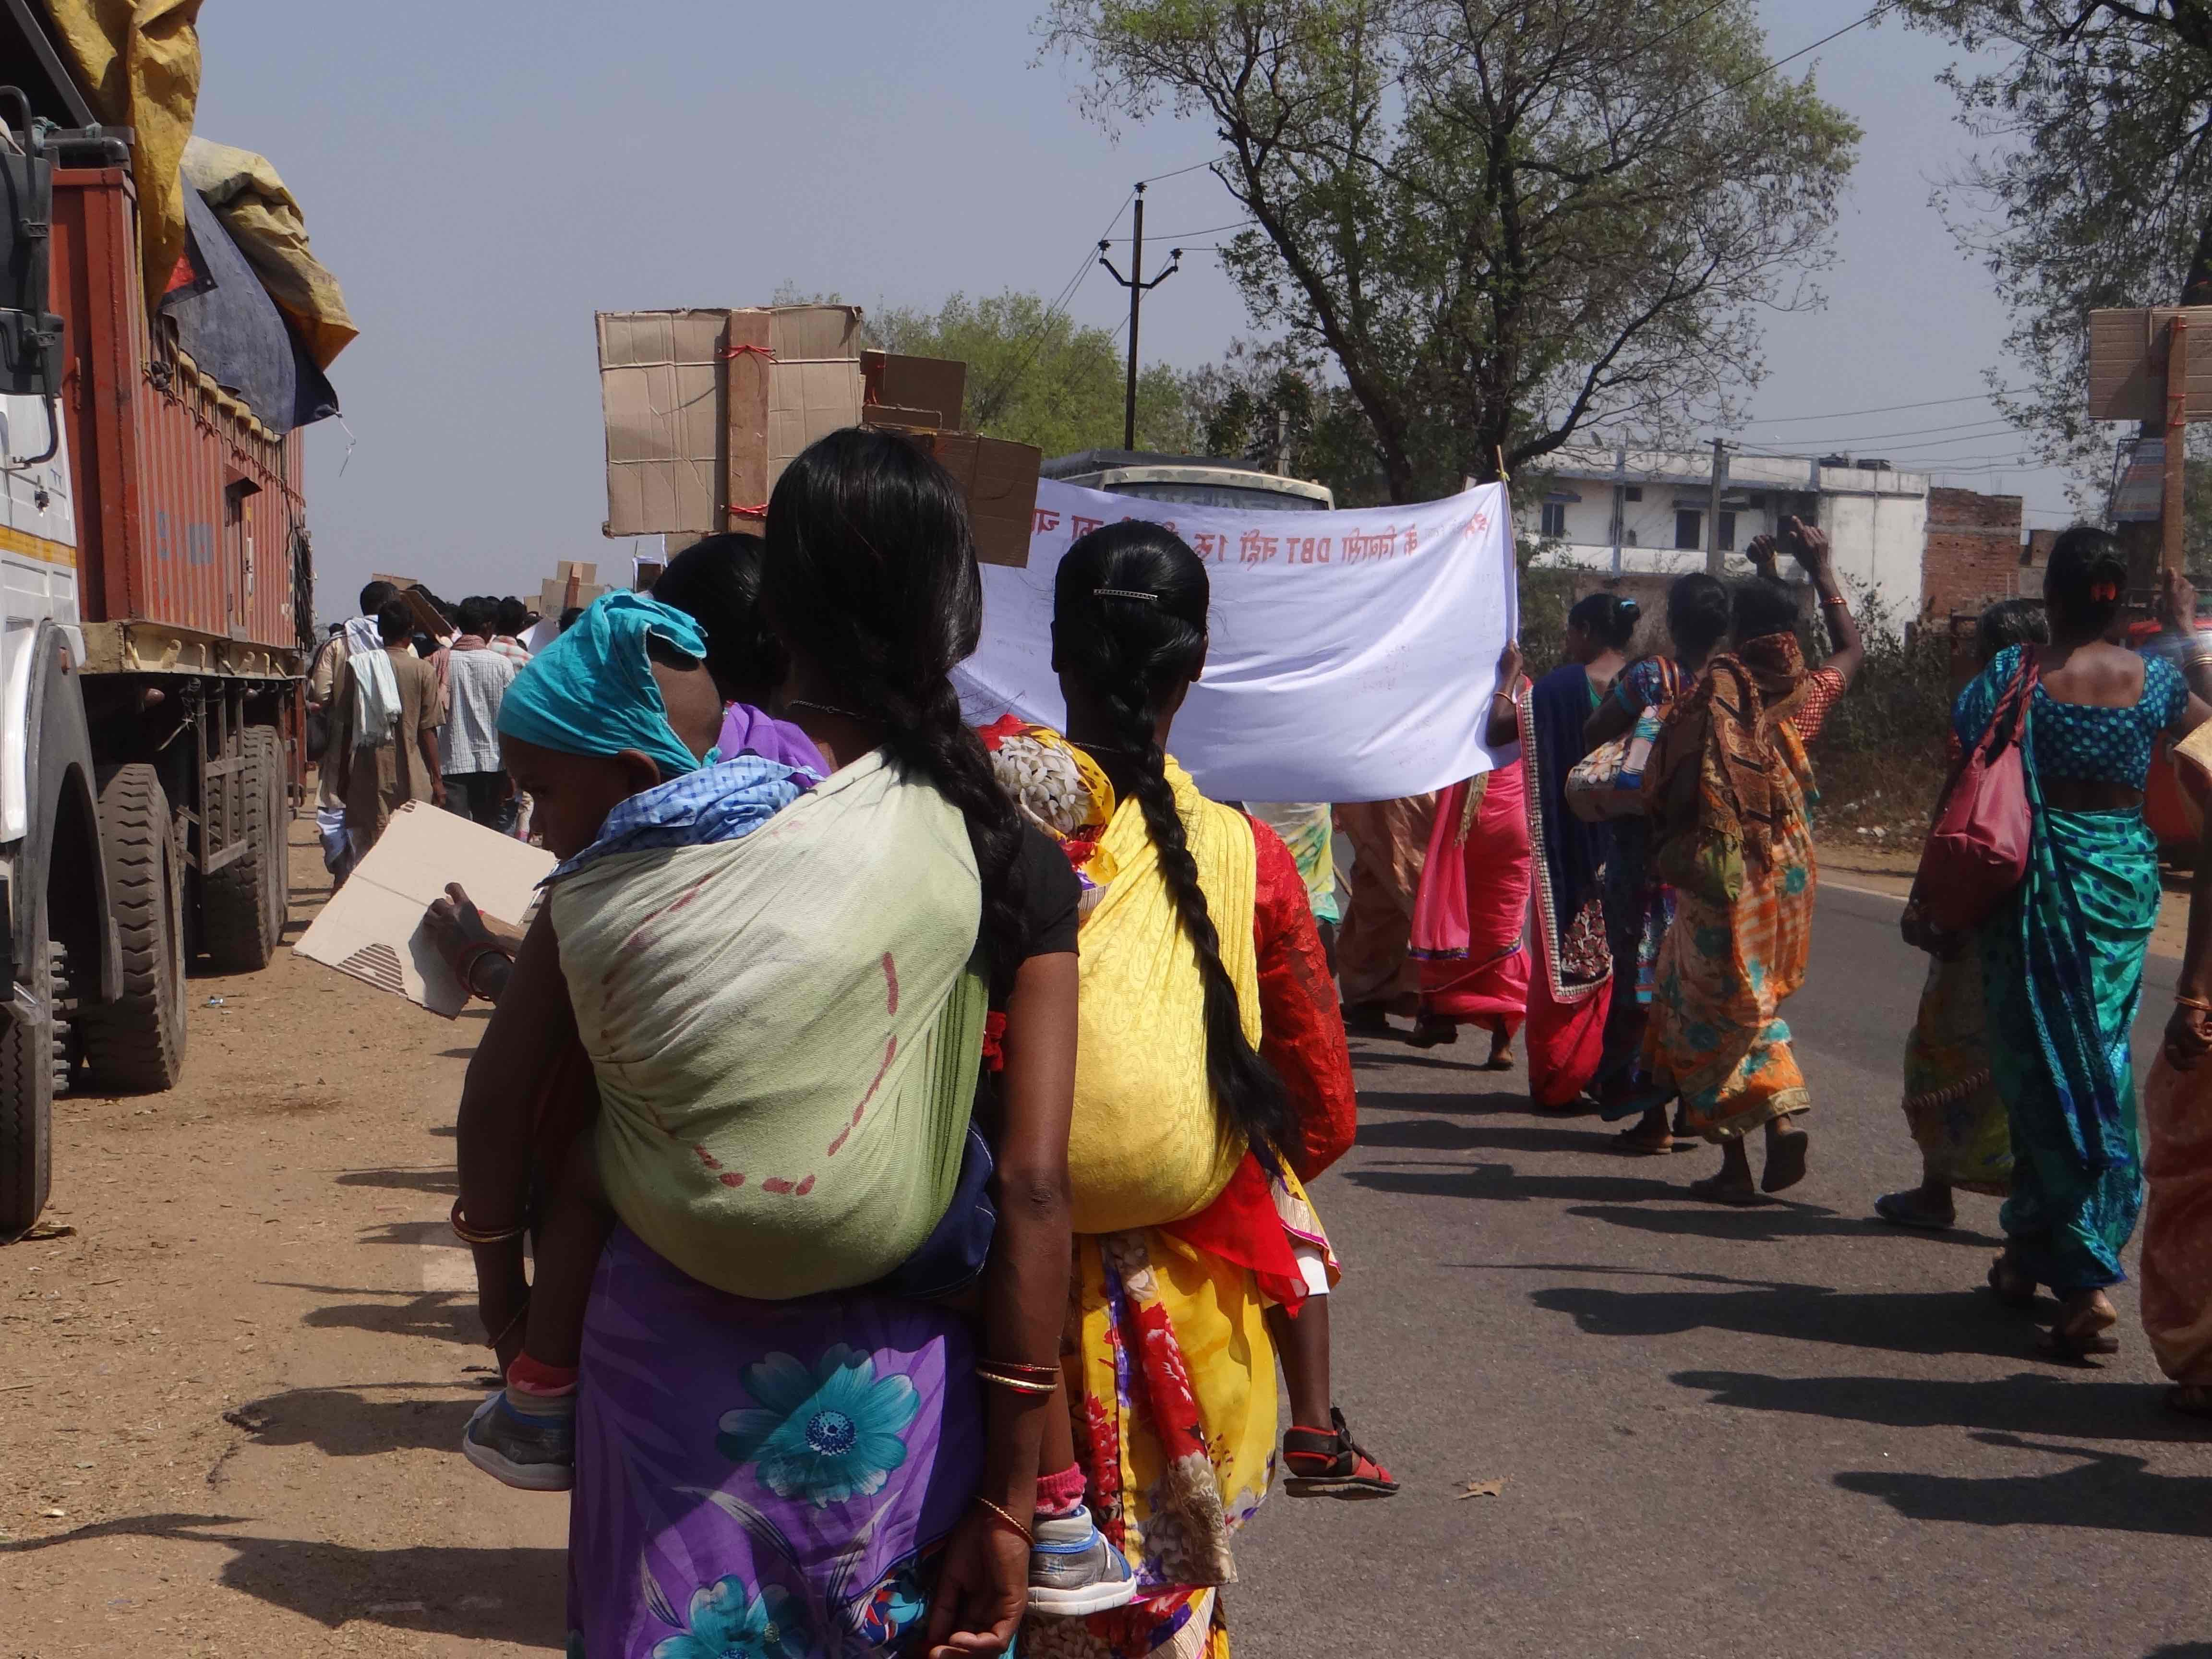 Women participate in the 8 km march against the DBT scheme, carrying their children on their backs. Credit: Jahnavi Sen